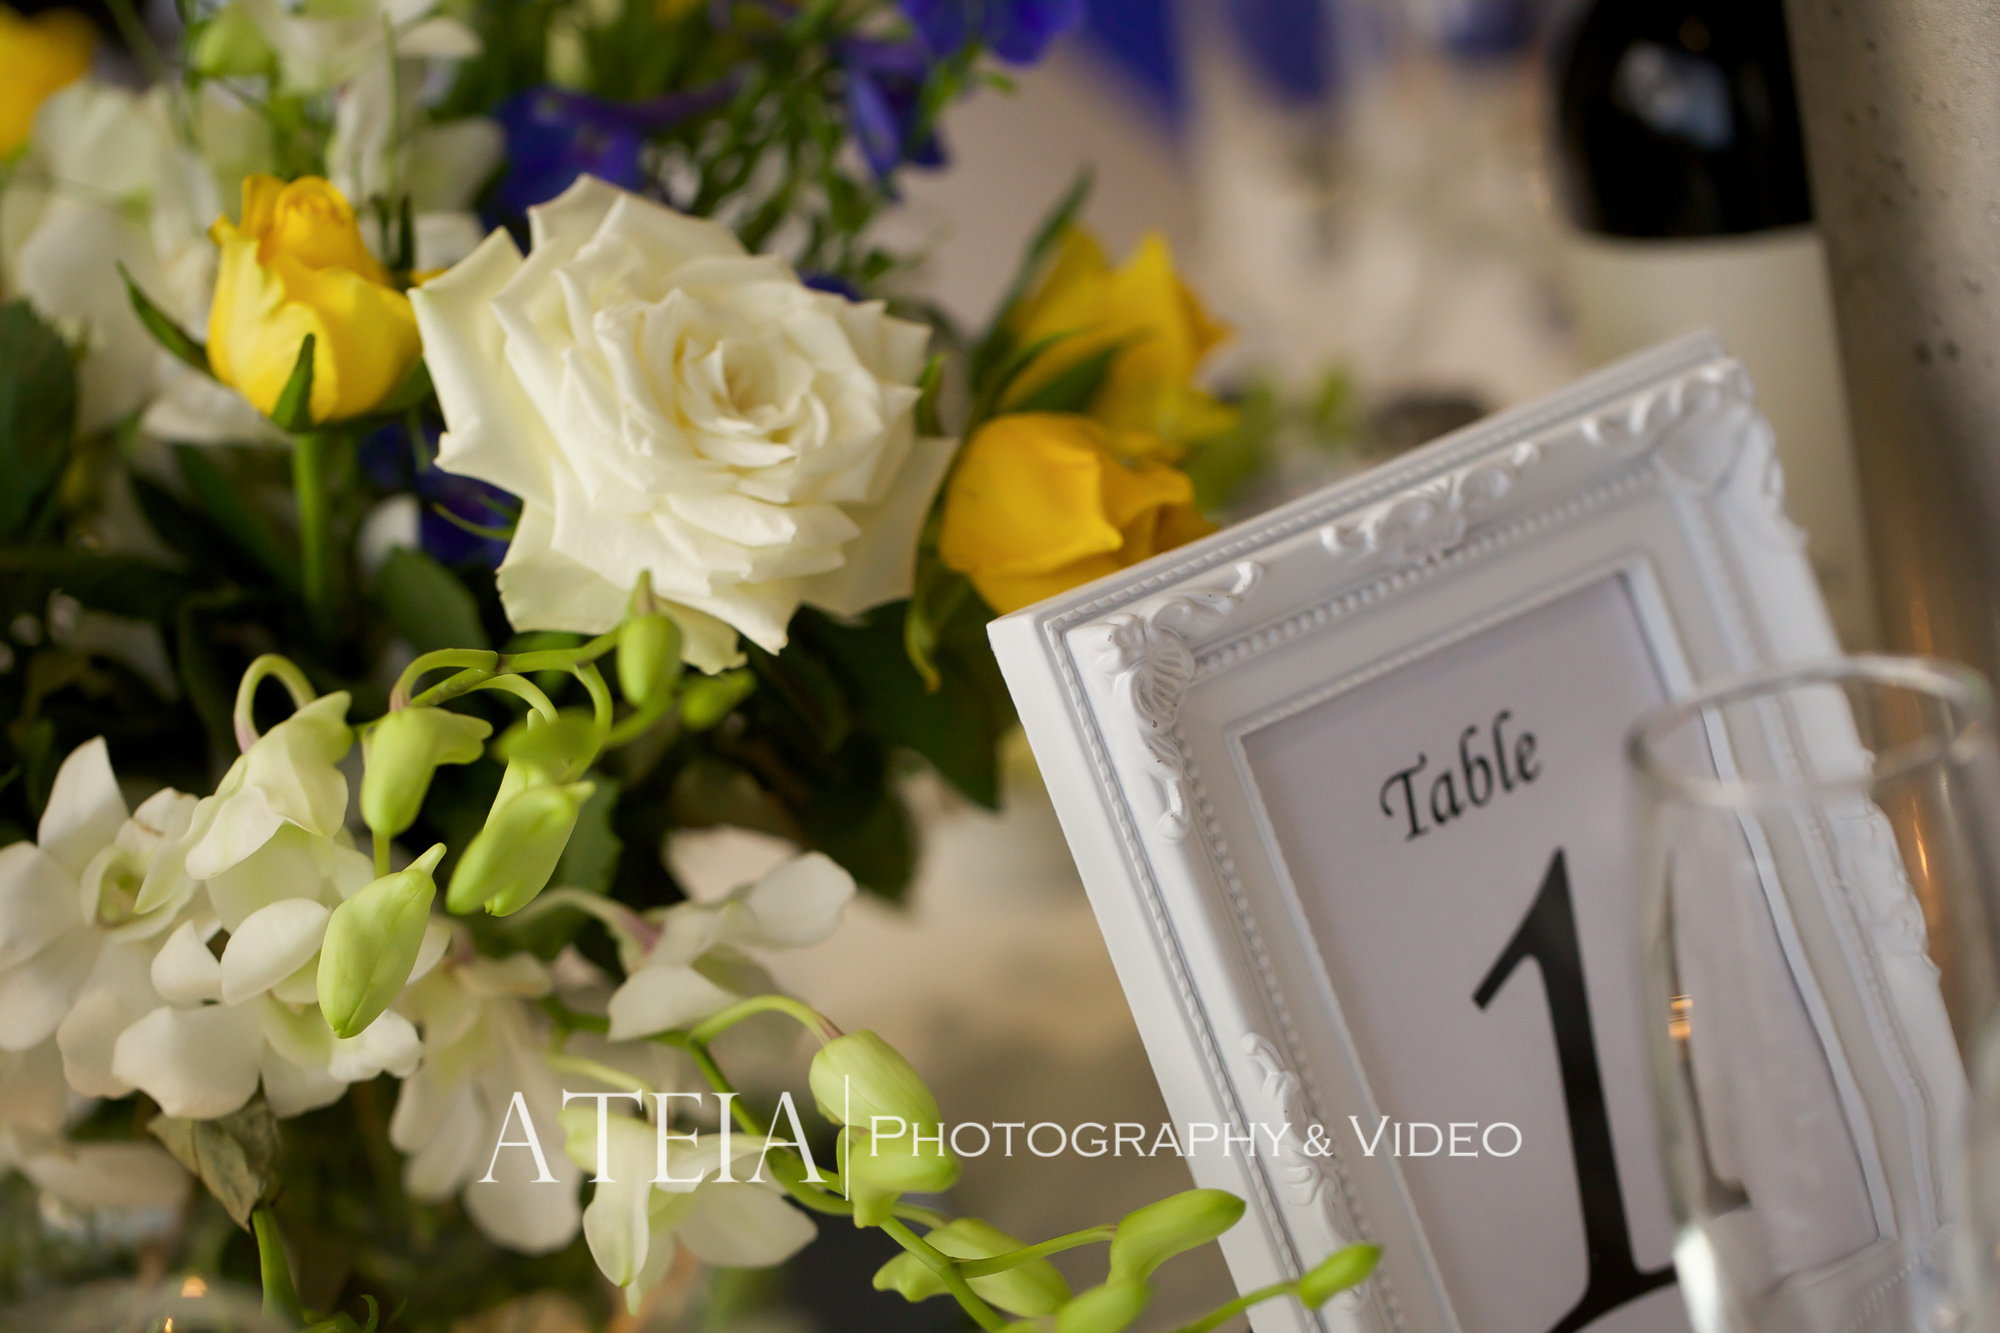 Ateia Photography & Video Wedding Photography Melbourne Brig